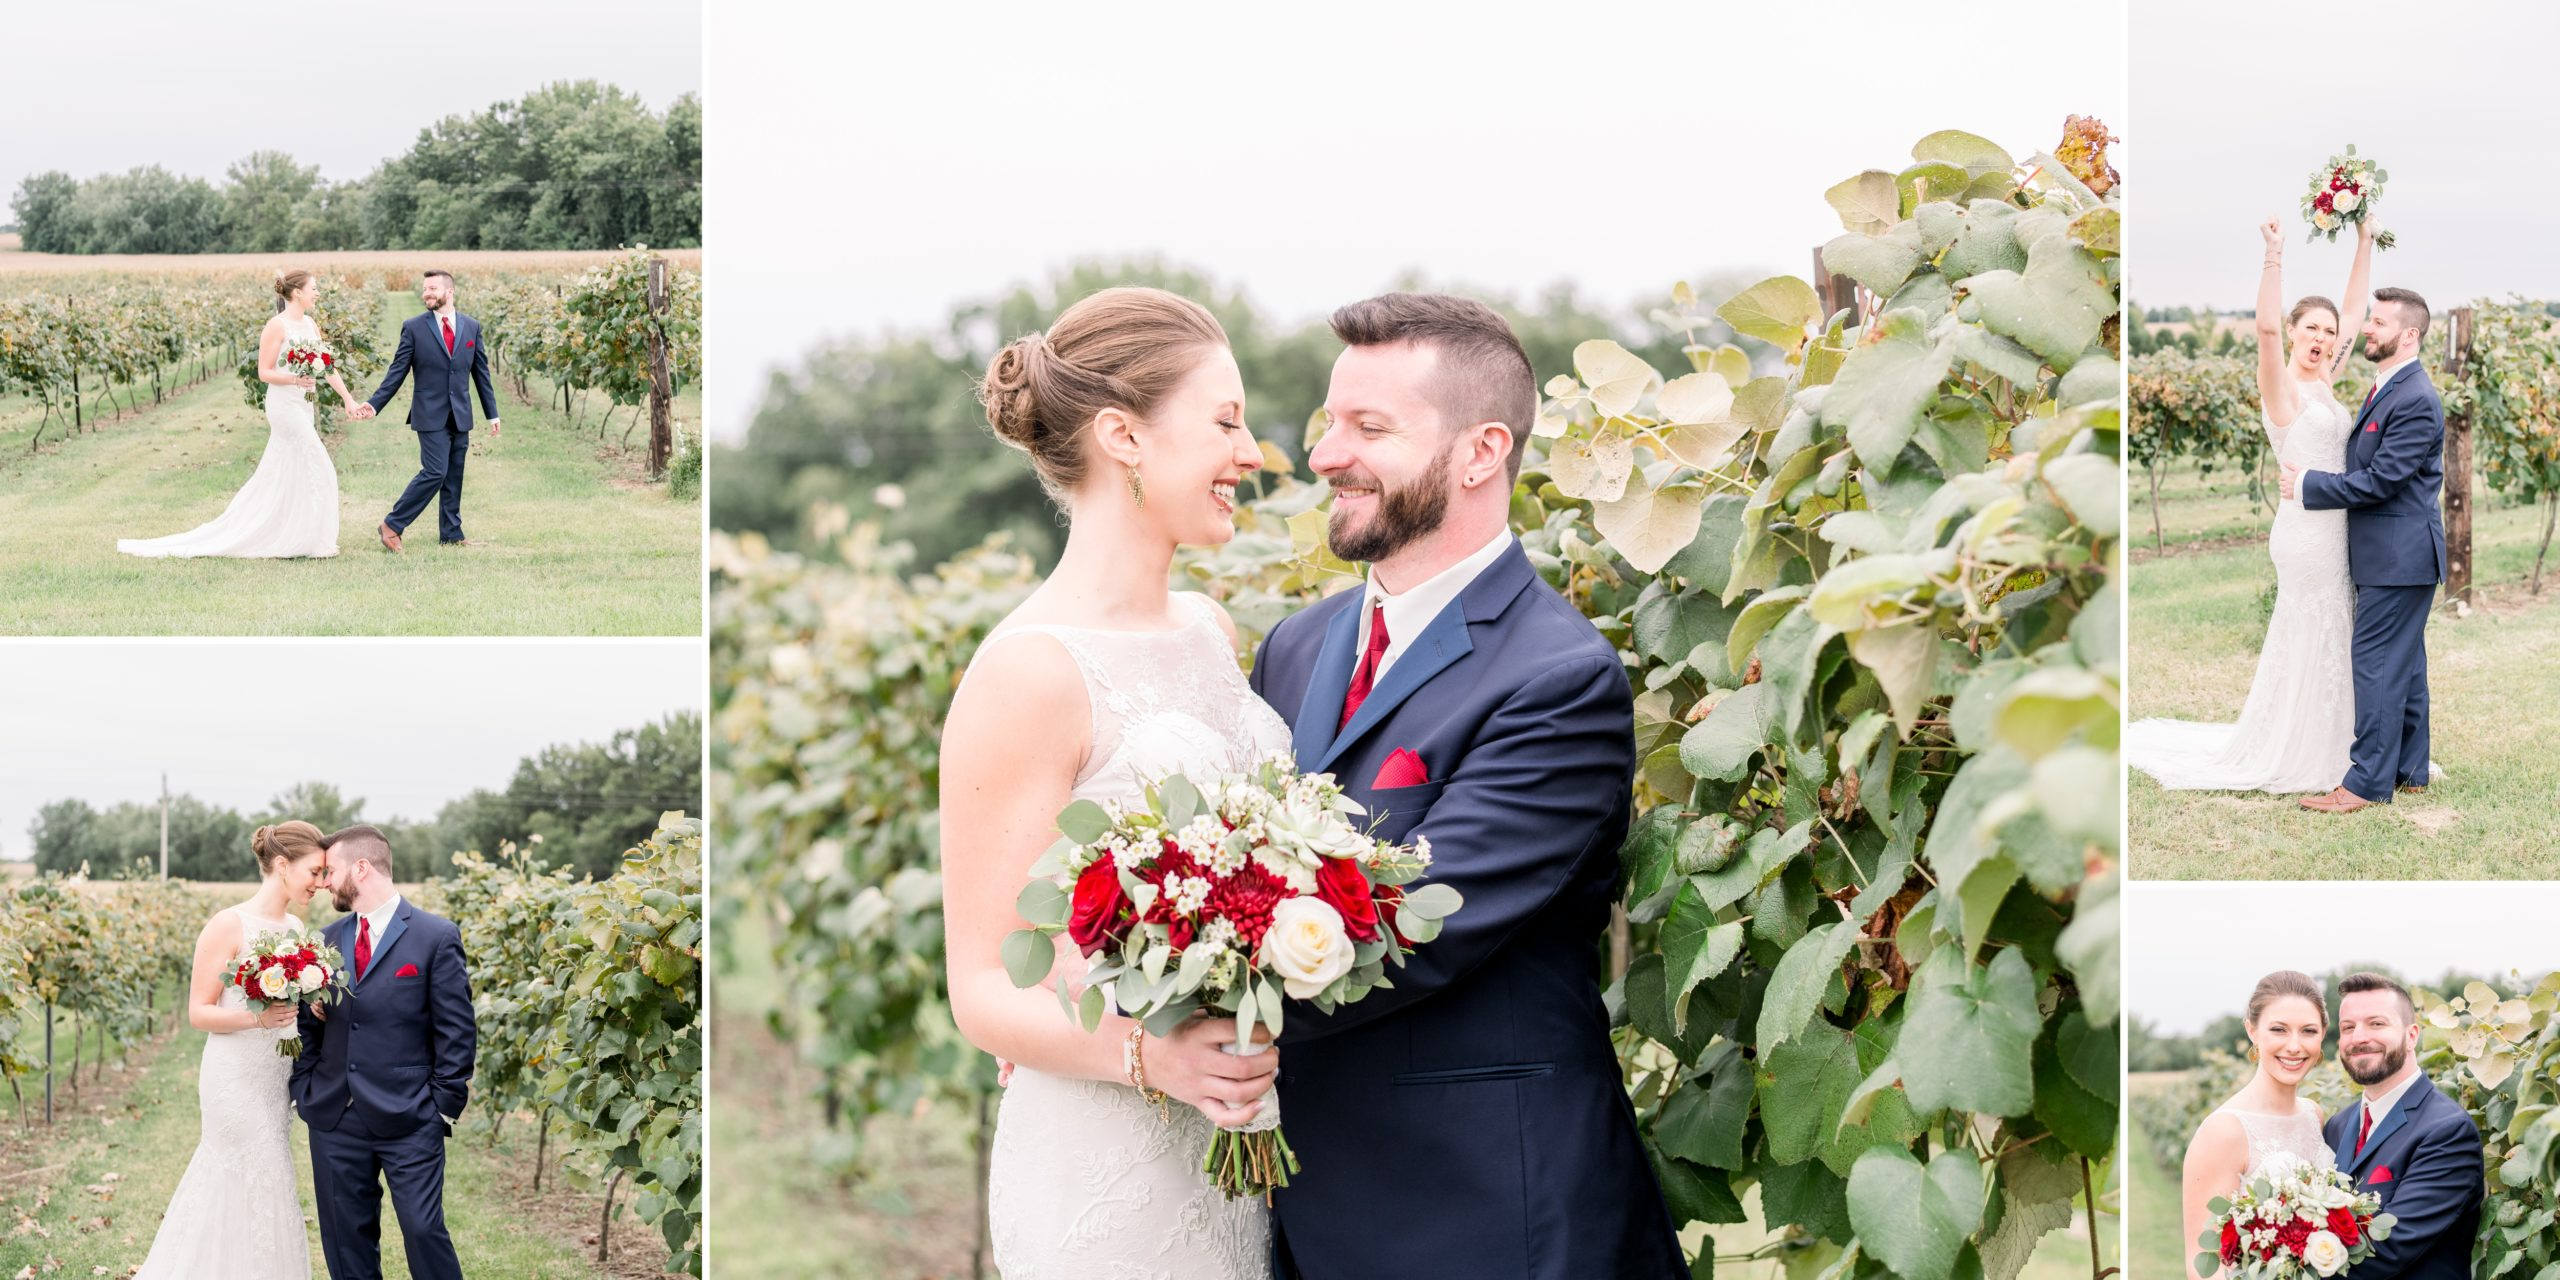 The bride and groom seeing each other for the first time amongst the grapevines of the vineyard in Dewitt, Iowa